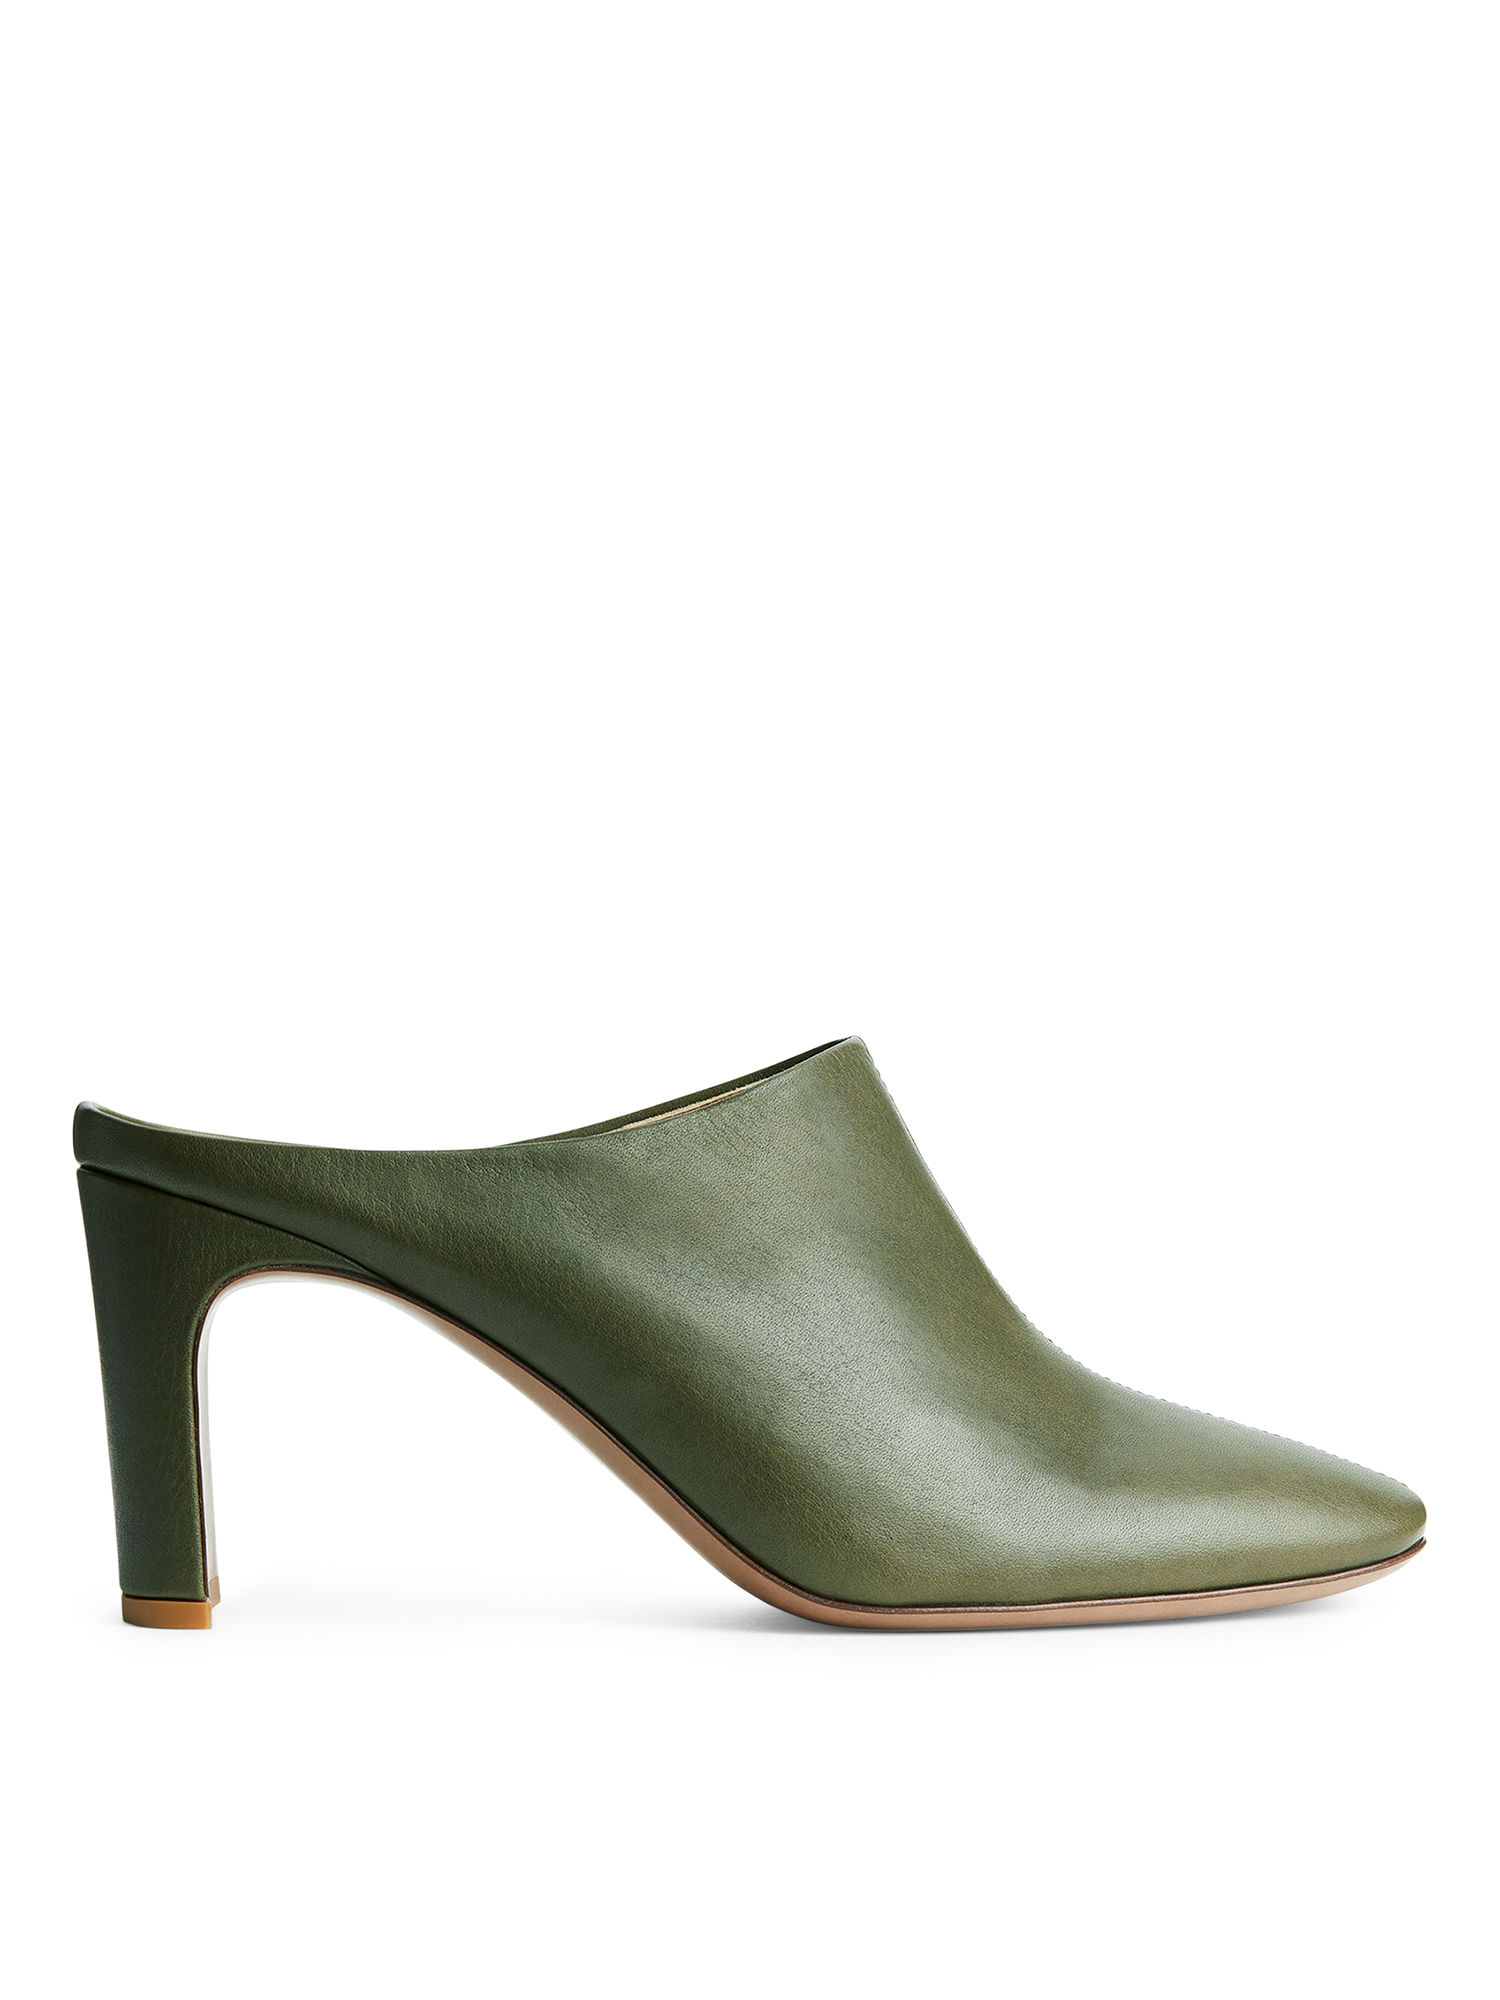 Fabric Swatch image of Arket heeled leather mules in green